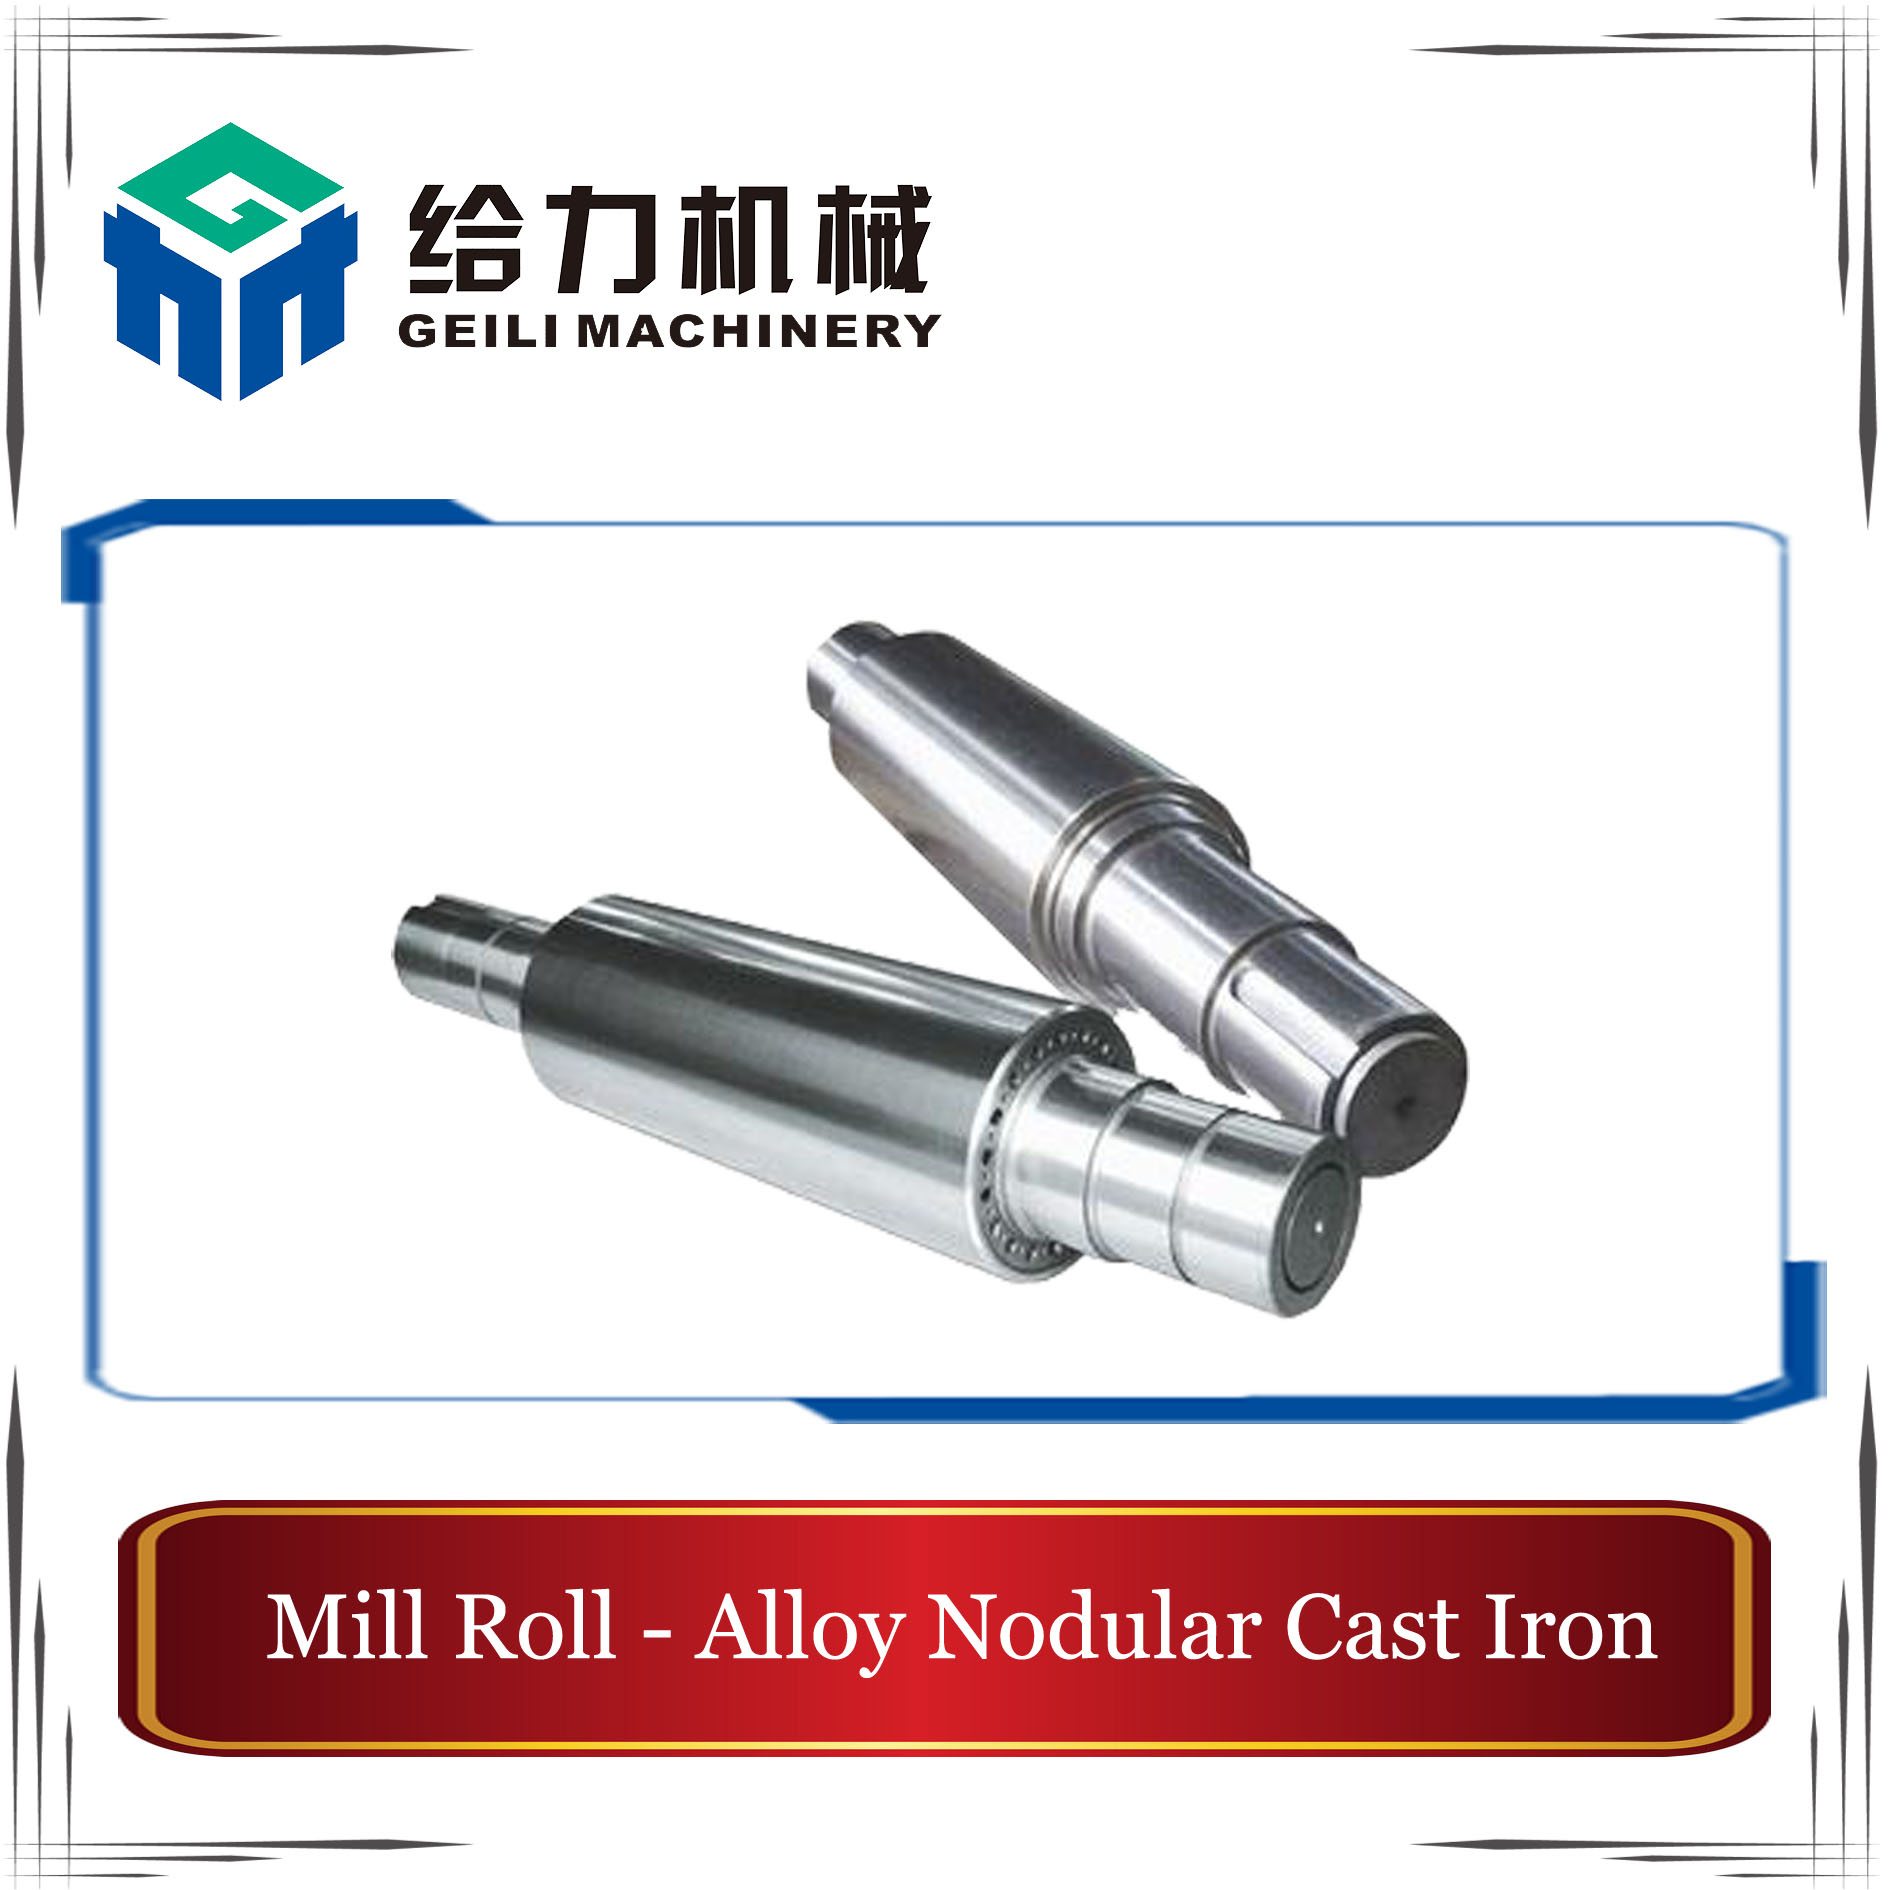 Alloy Nondular Casts Iron Rolls